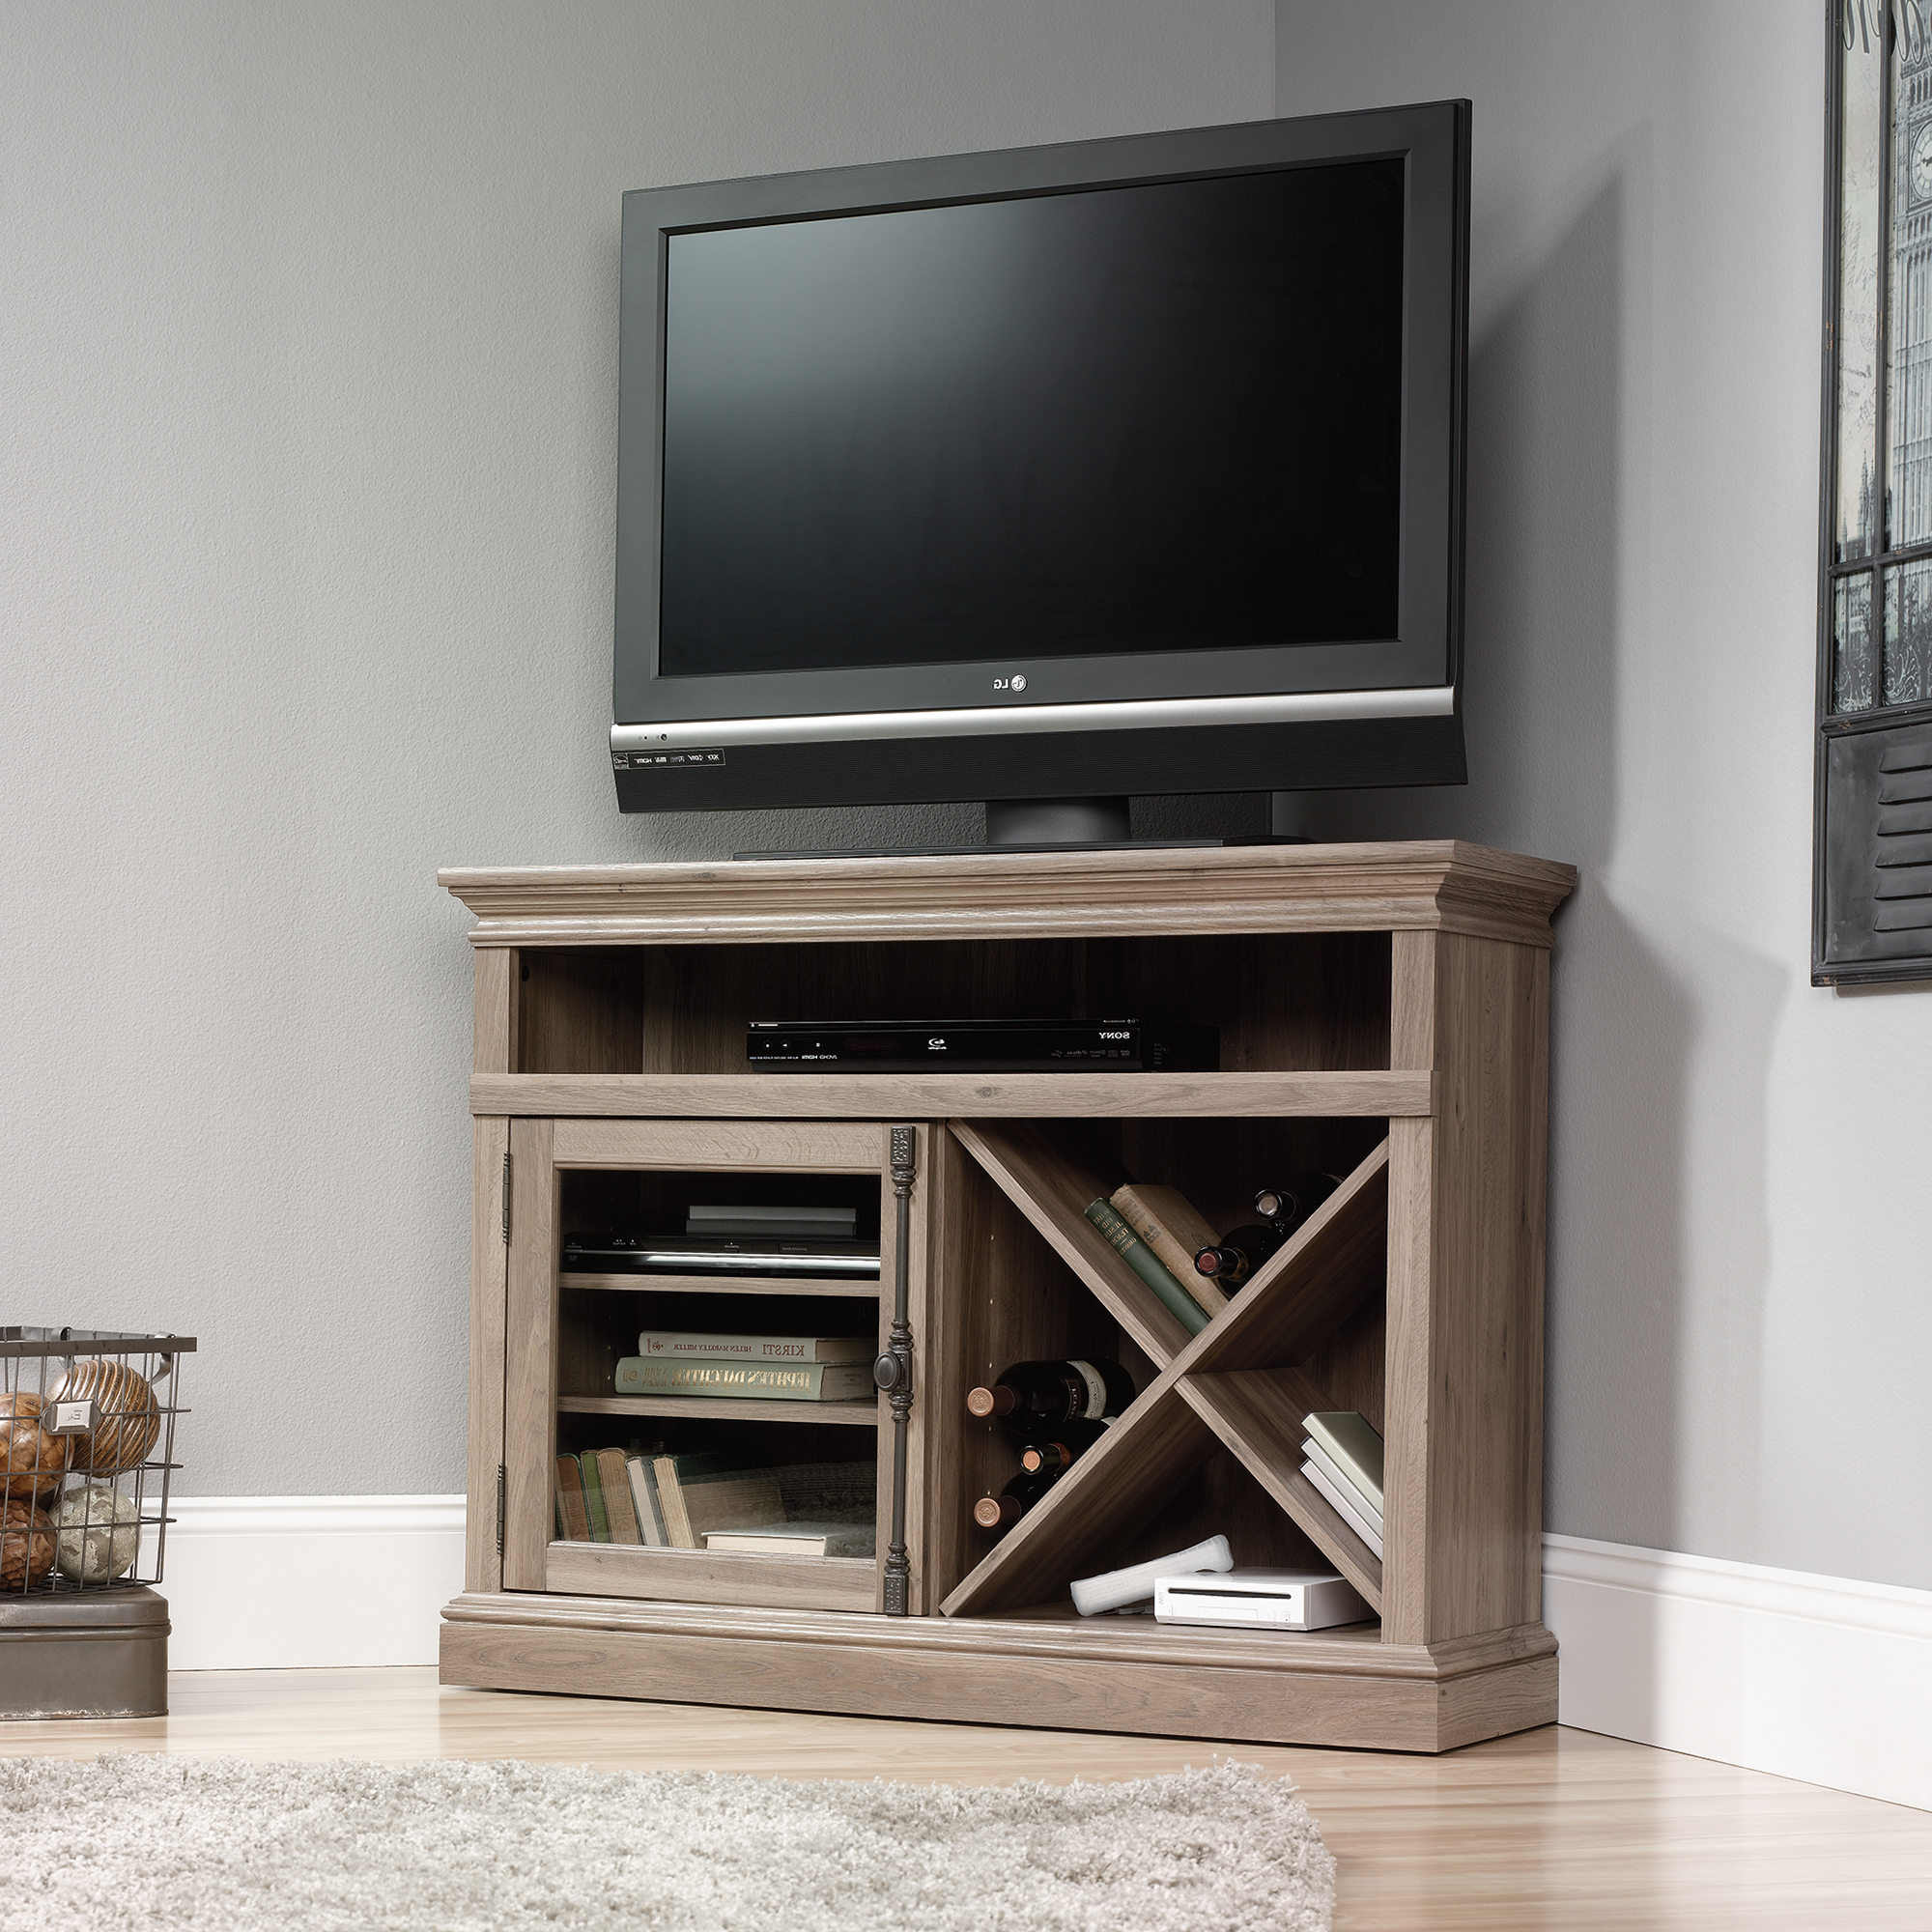 Sauder Regarding Well Known Flat Screen Tv Stands Corner Units (Gallery 8 of 20)